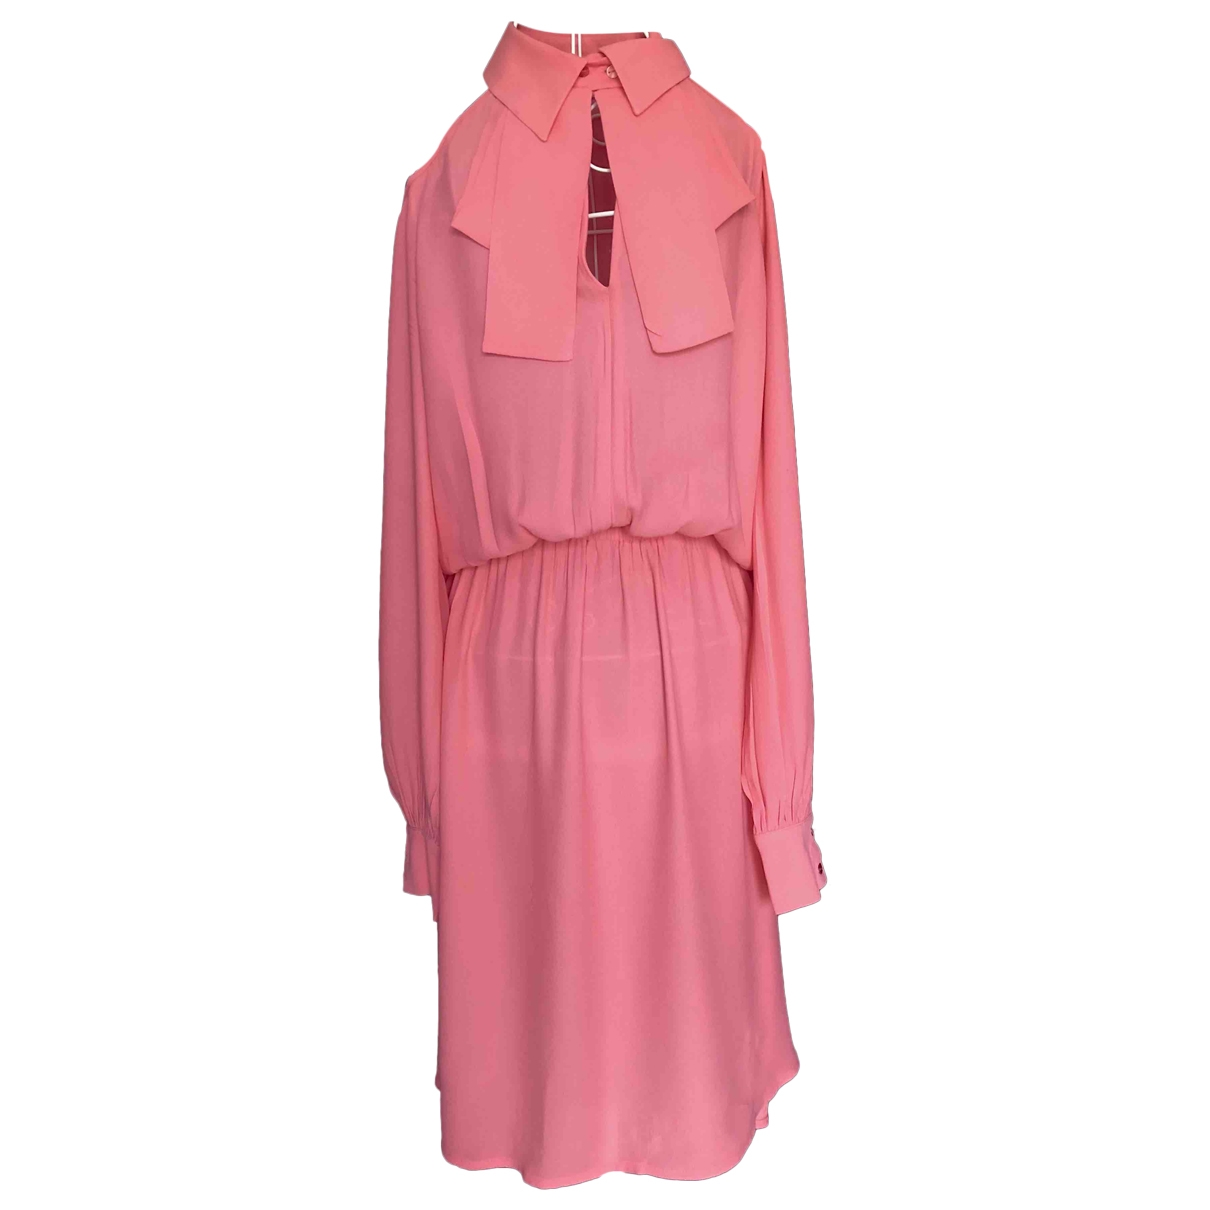 Non Signé / Unsigned \N Pink dress for Women S International